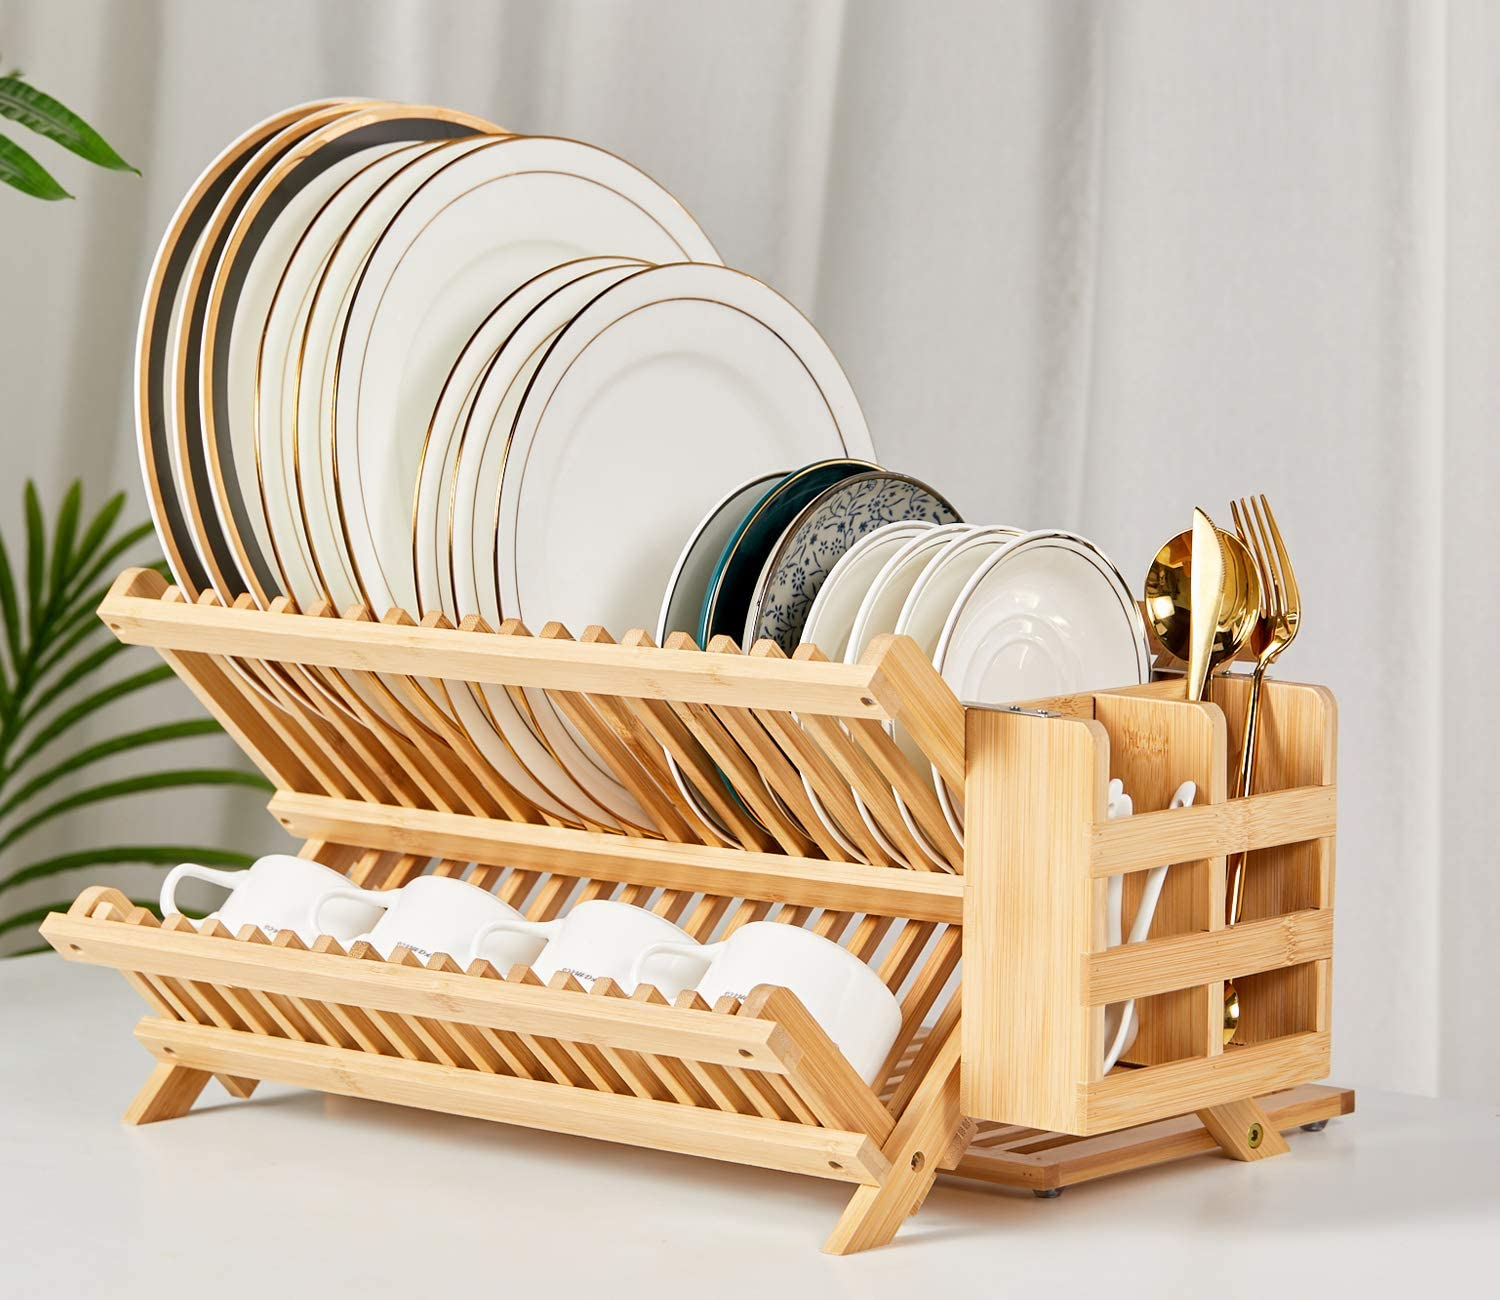 3-Tier Large Folding Drying Holder for Kitchen Counter NOVAYEAH Bamboo Dish Drying Rack with Utensil Holder Collapsible Wooden Dish Drainer Rack